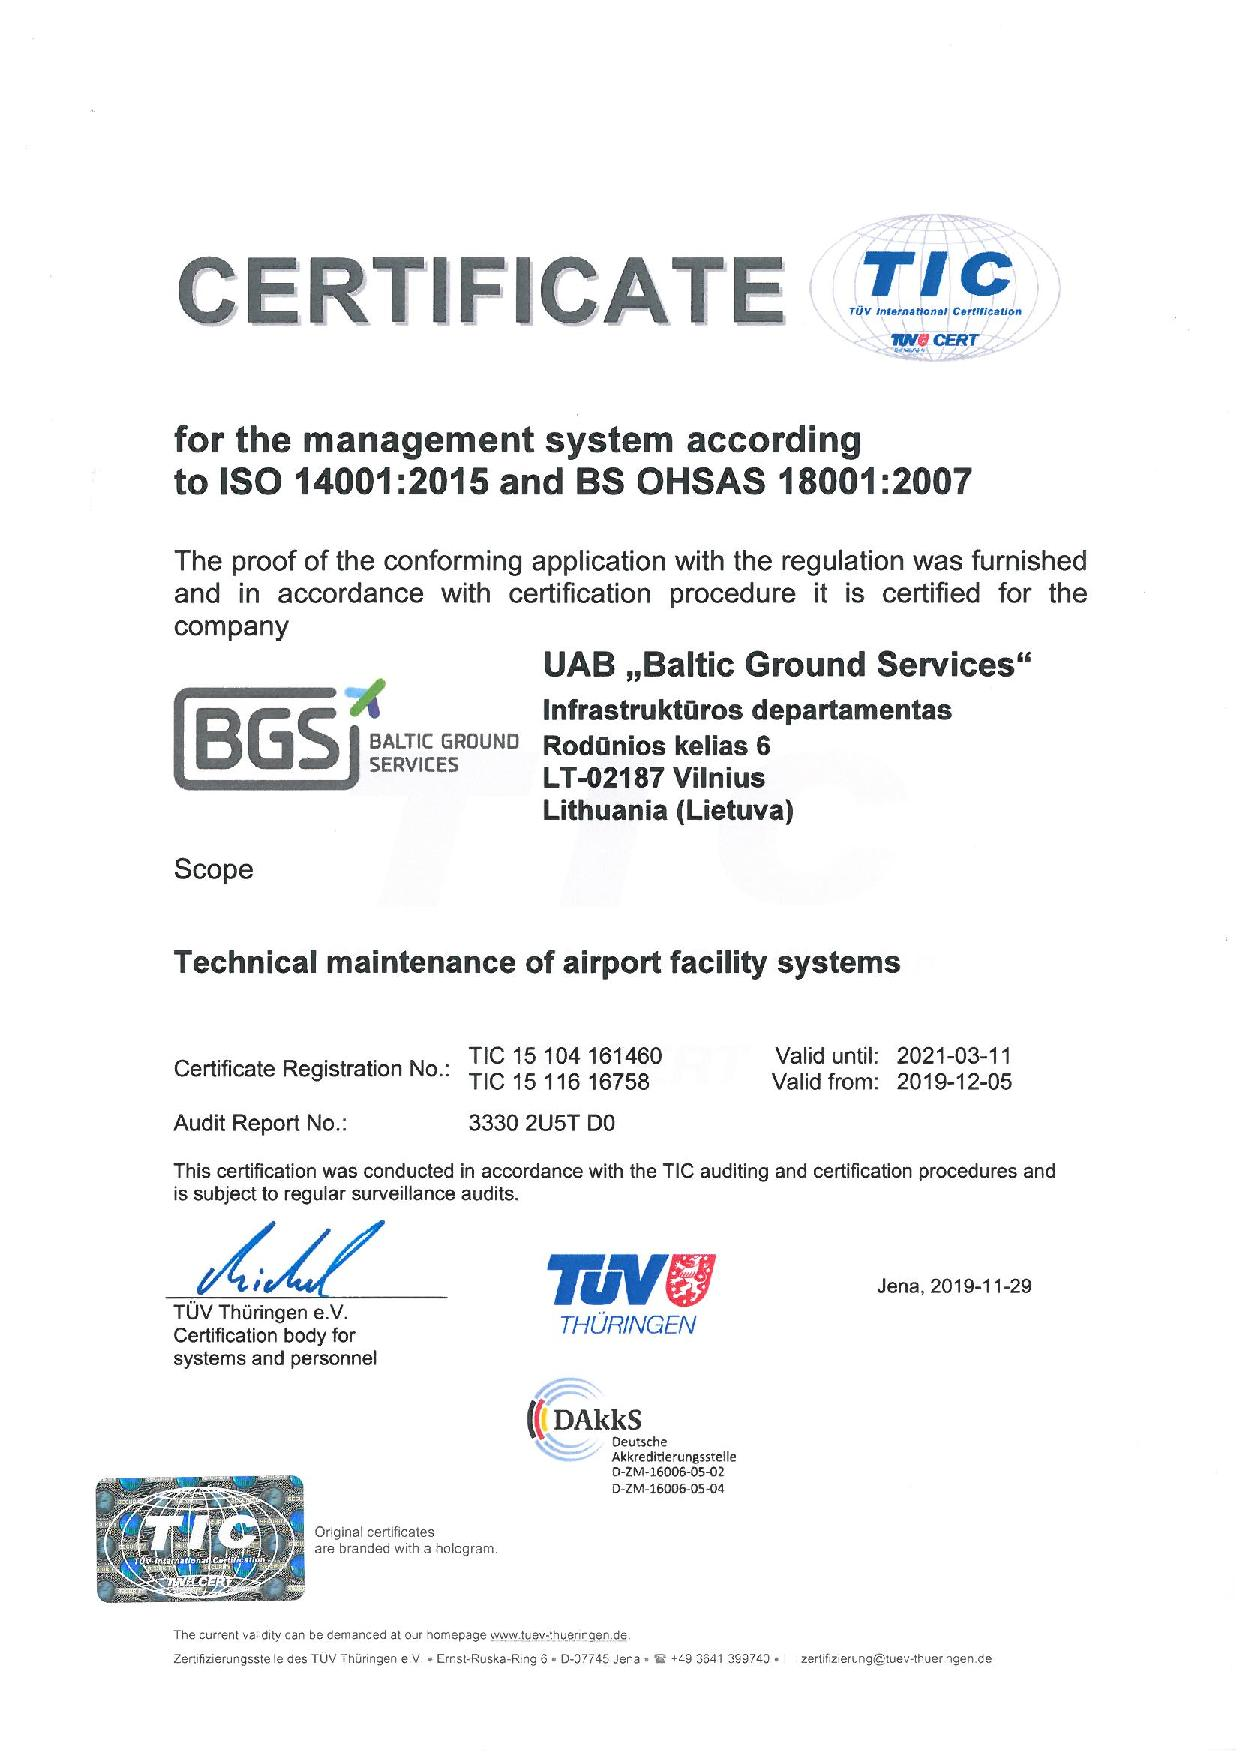 ISO and BS OHSAS TIC Certificate